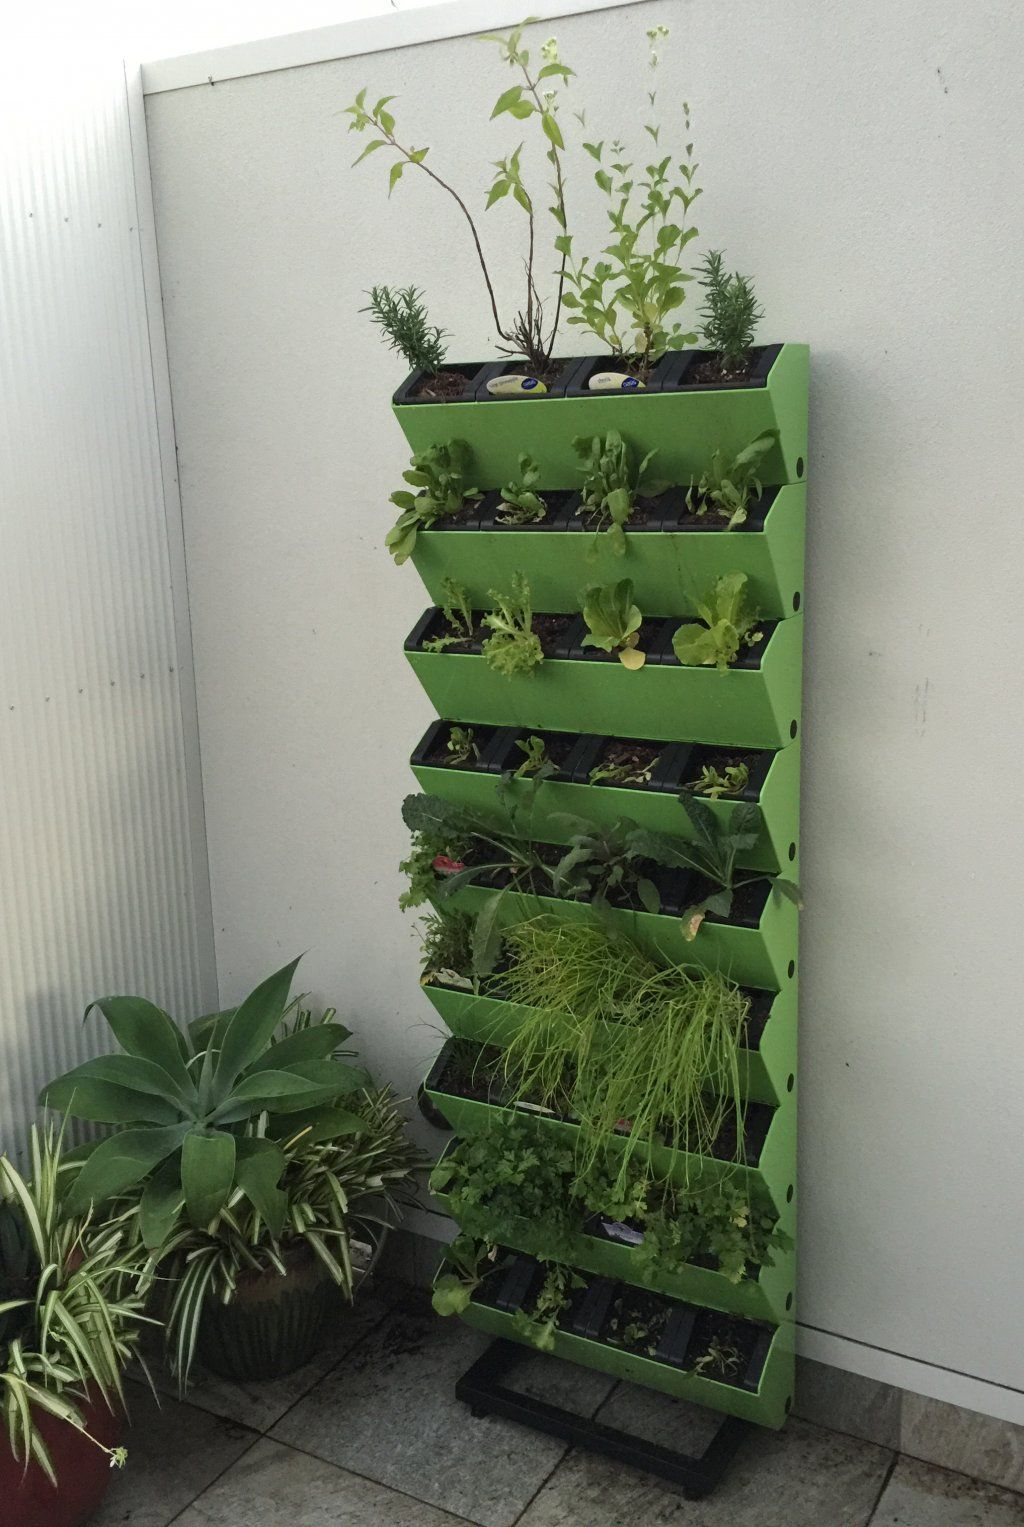 Easy Vertical Garden On Rack System For Edible Gardens Or Green Walls Great For Balconies